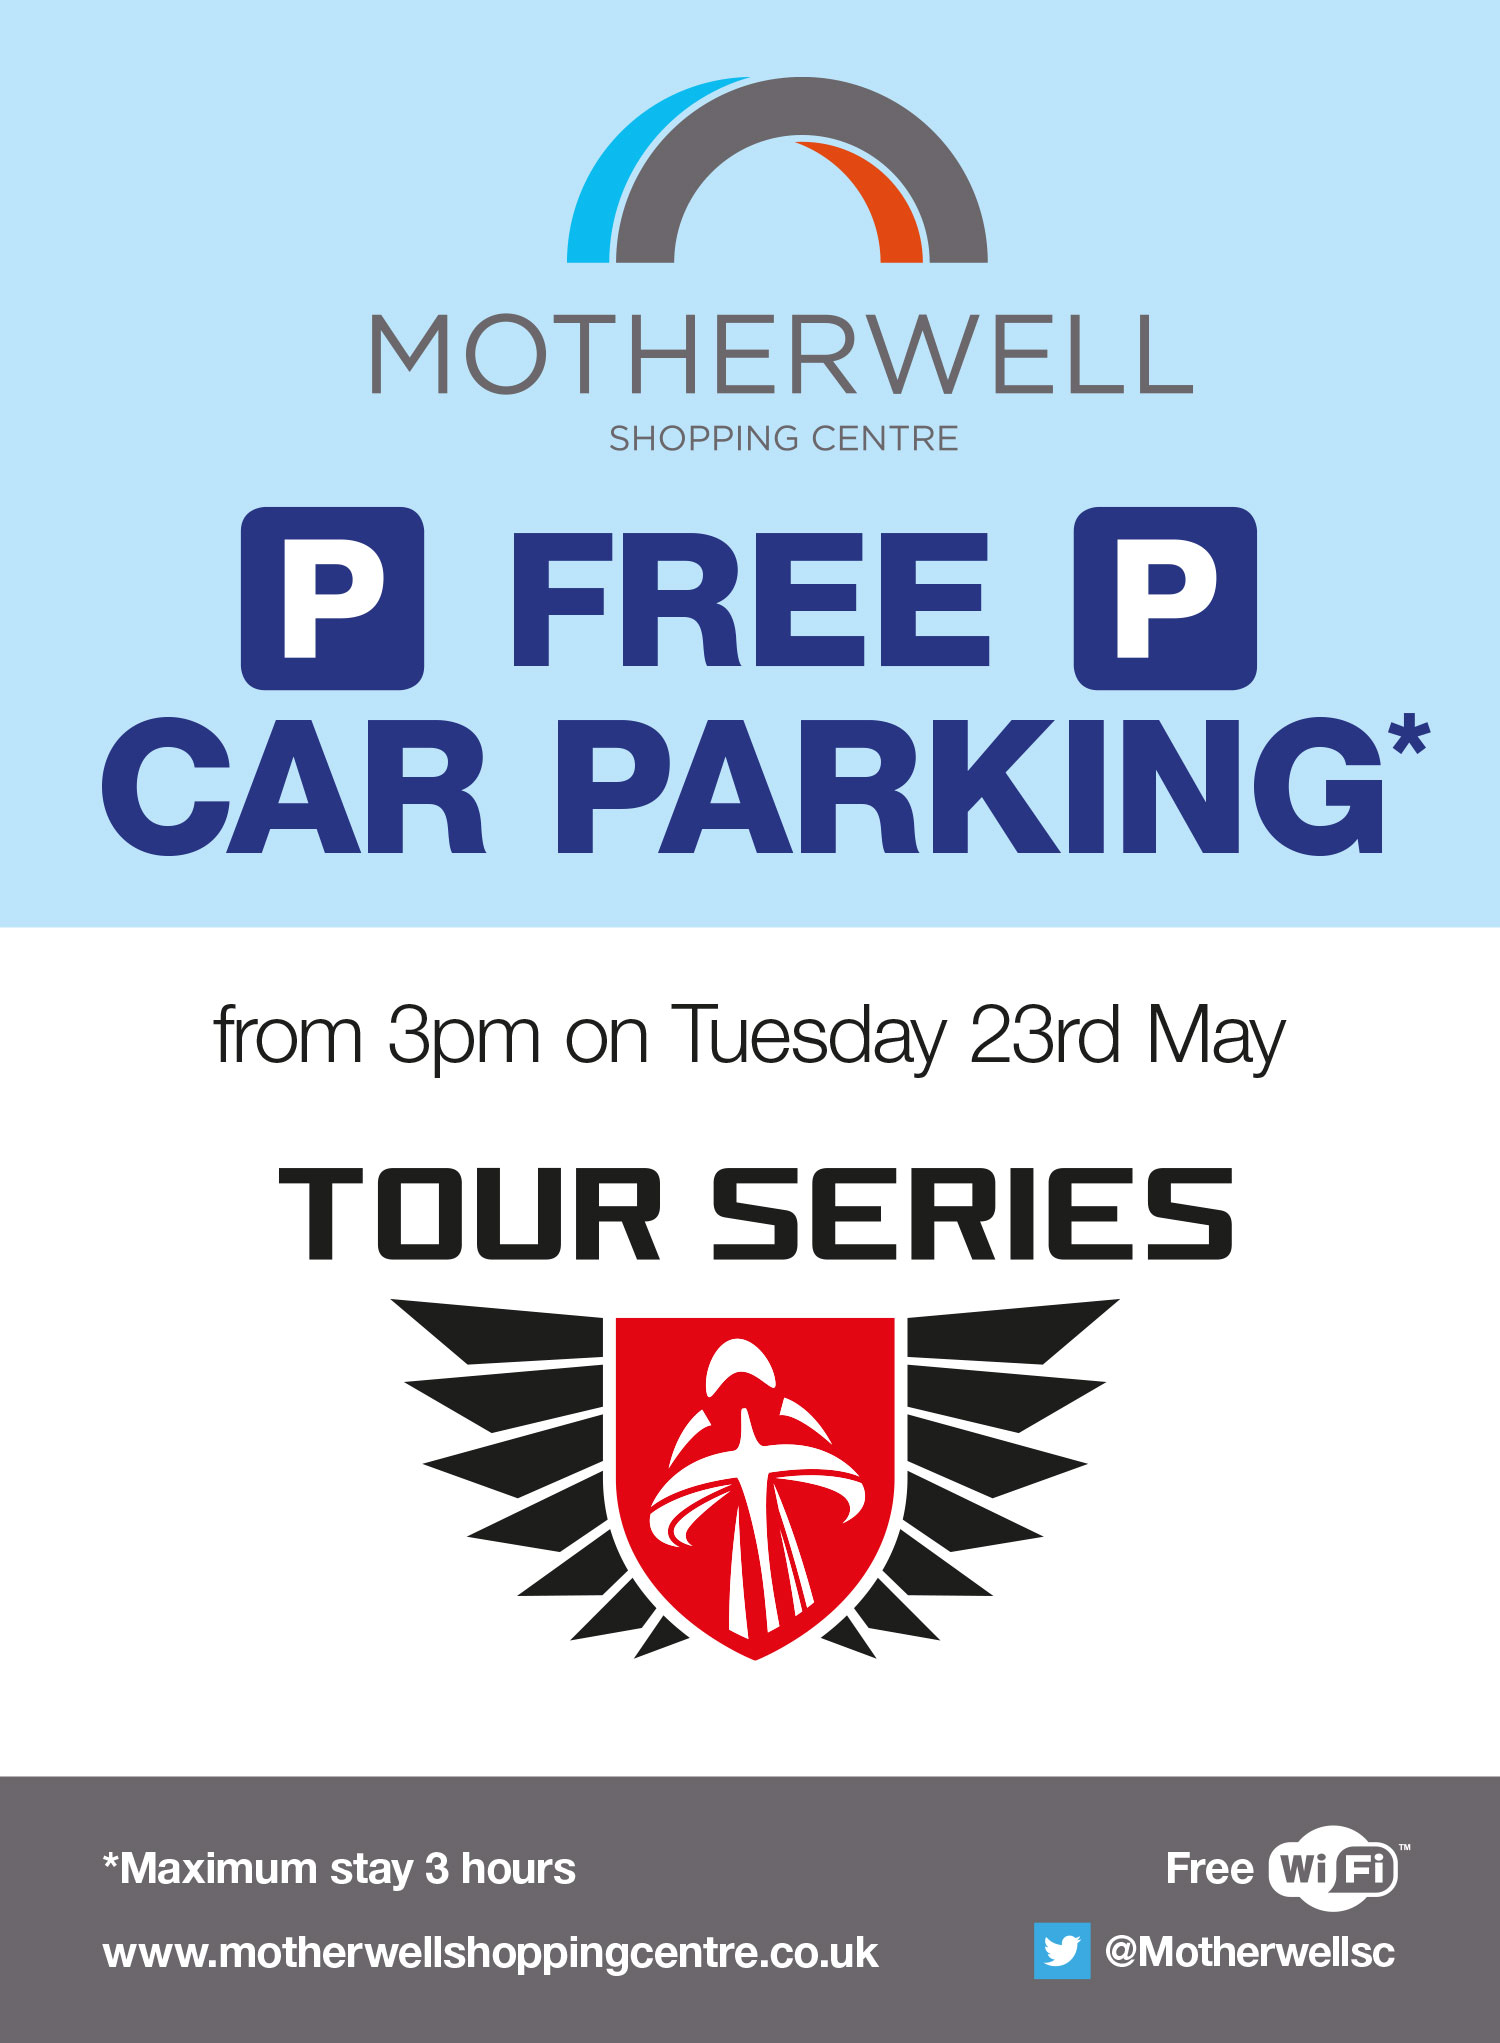 Tour Series at Motherwell Shopping Centre